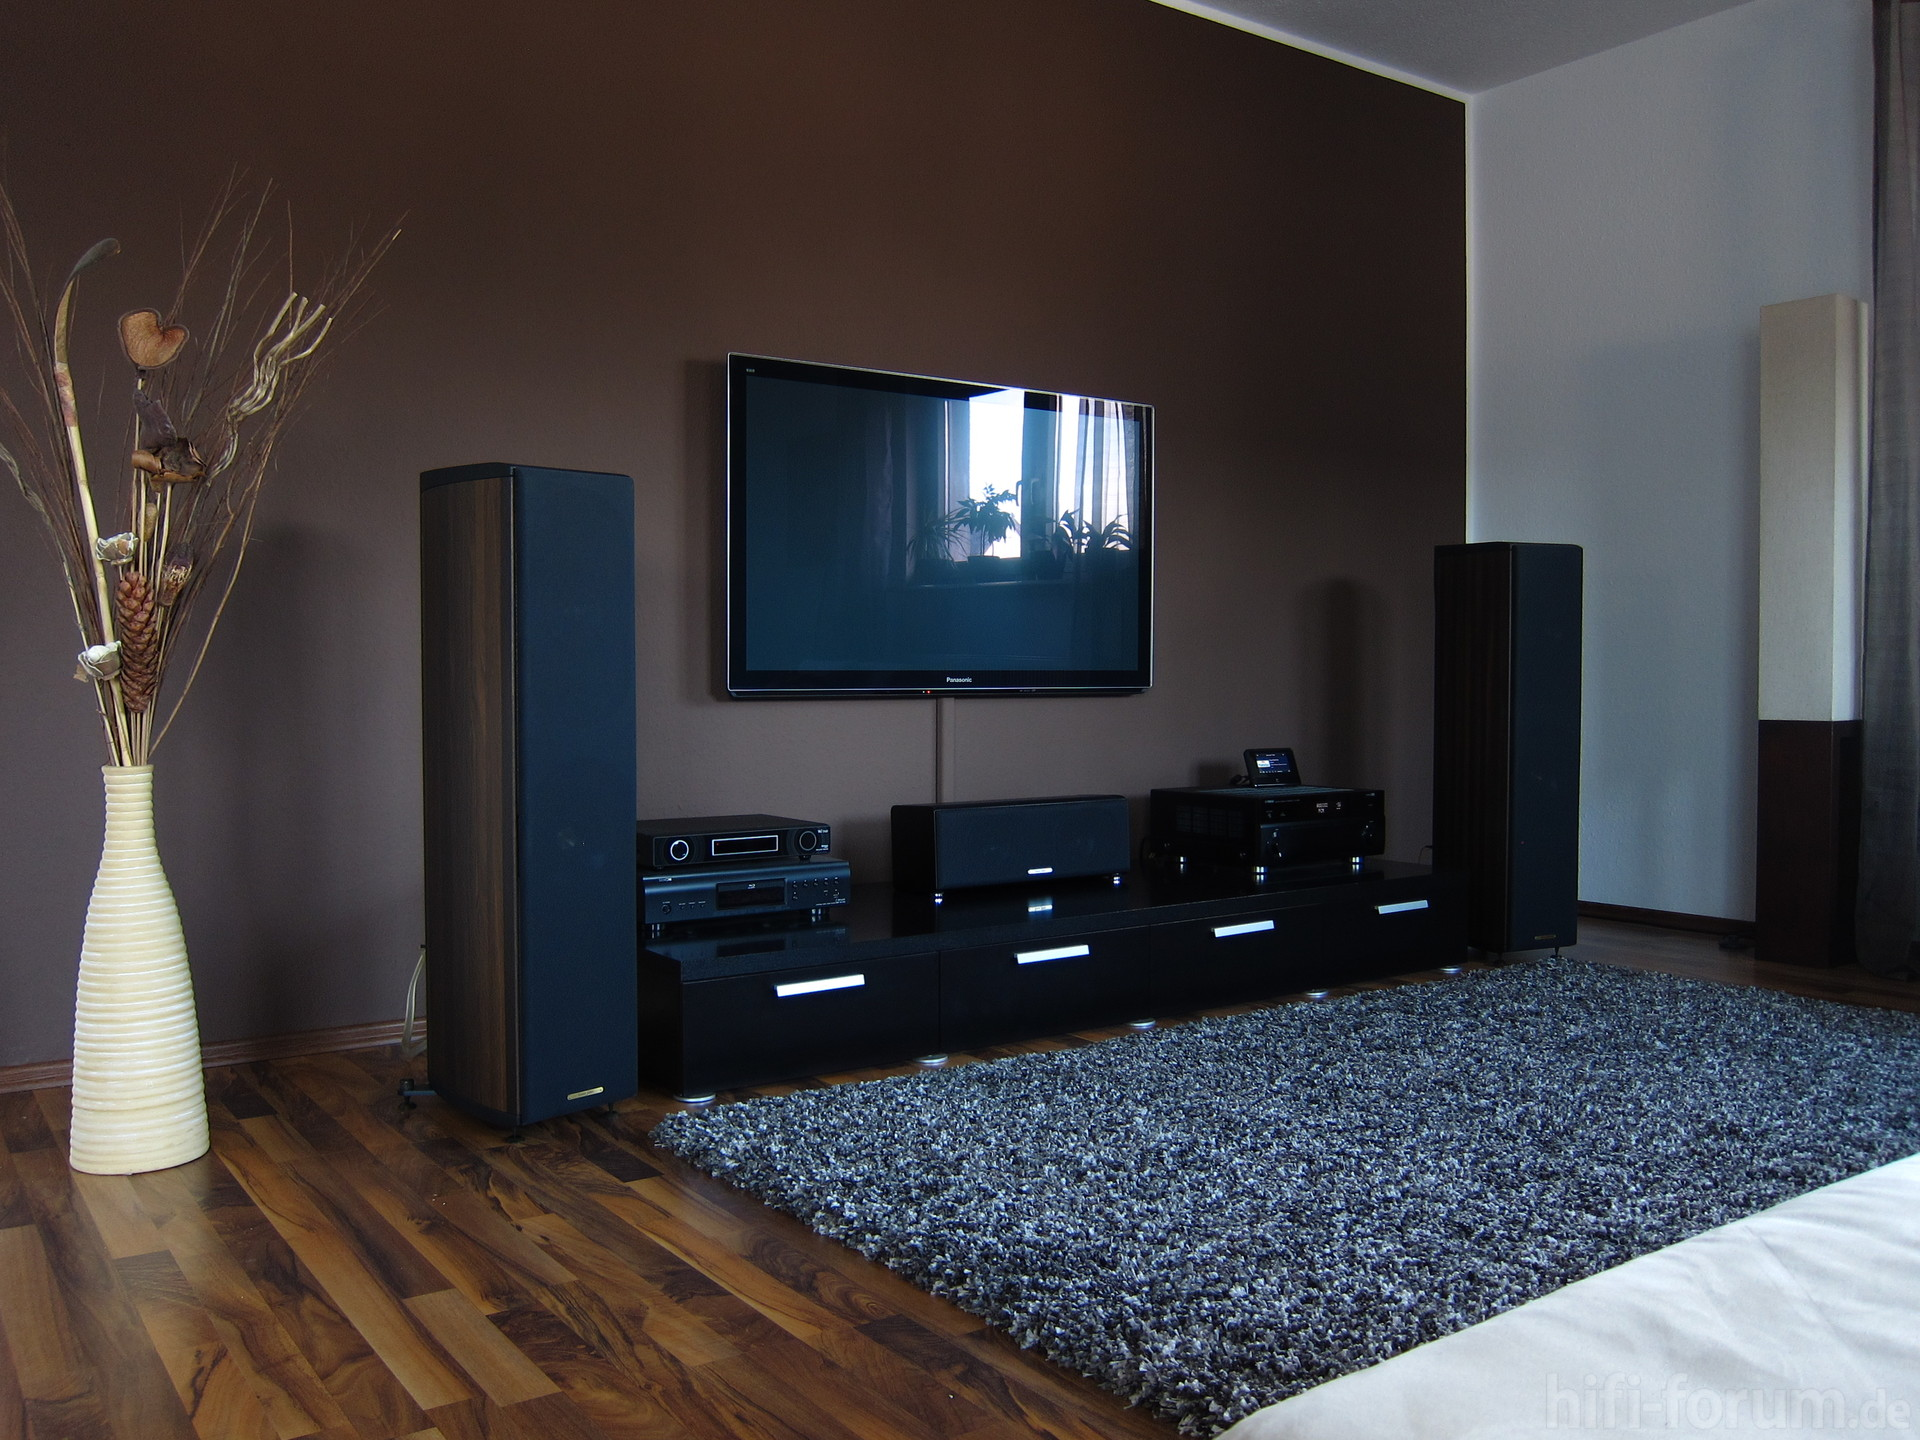 tv ecke ecke heimkino sonusfaberliuto surround tv yamaharxv2067 hifi bildergalerie. Black Bedroom Furniture Sets. Home Design Ideas